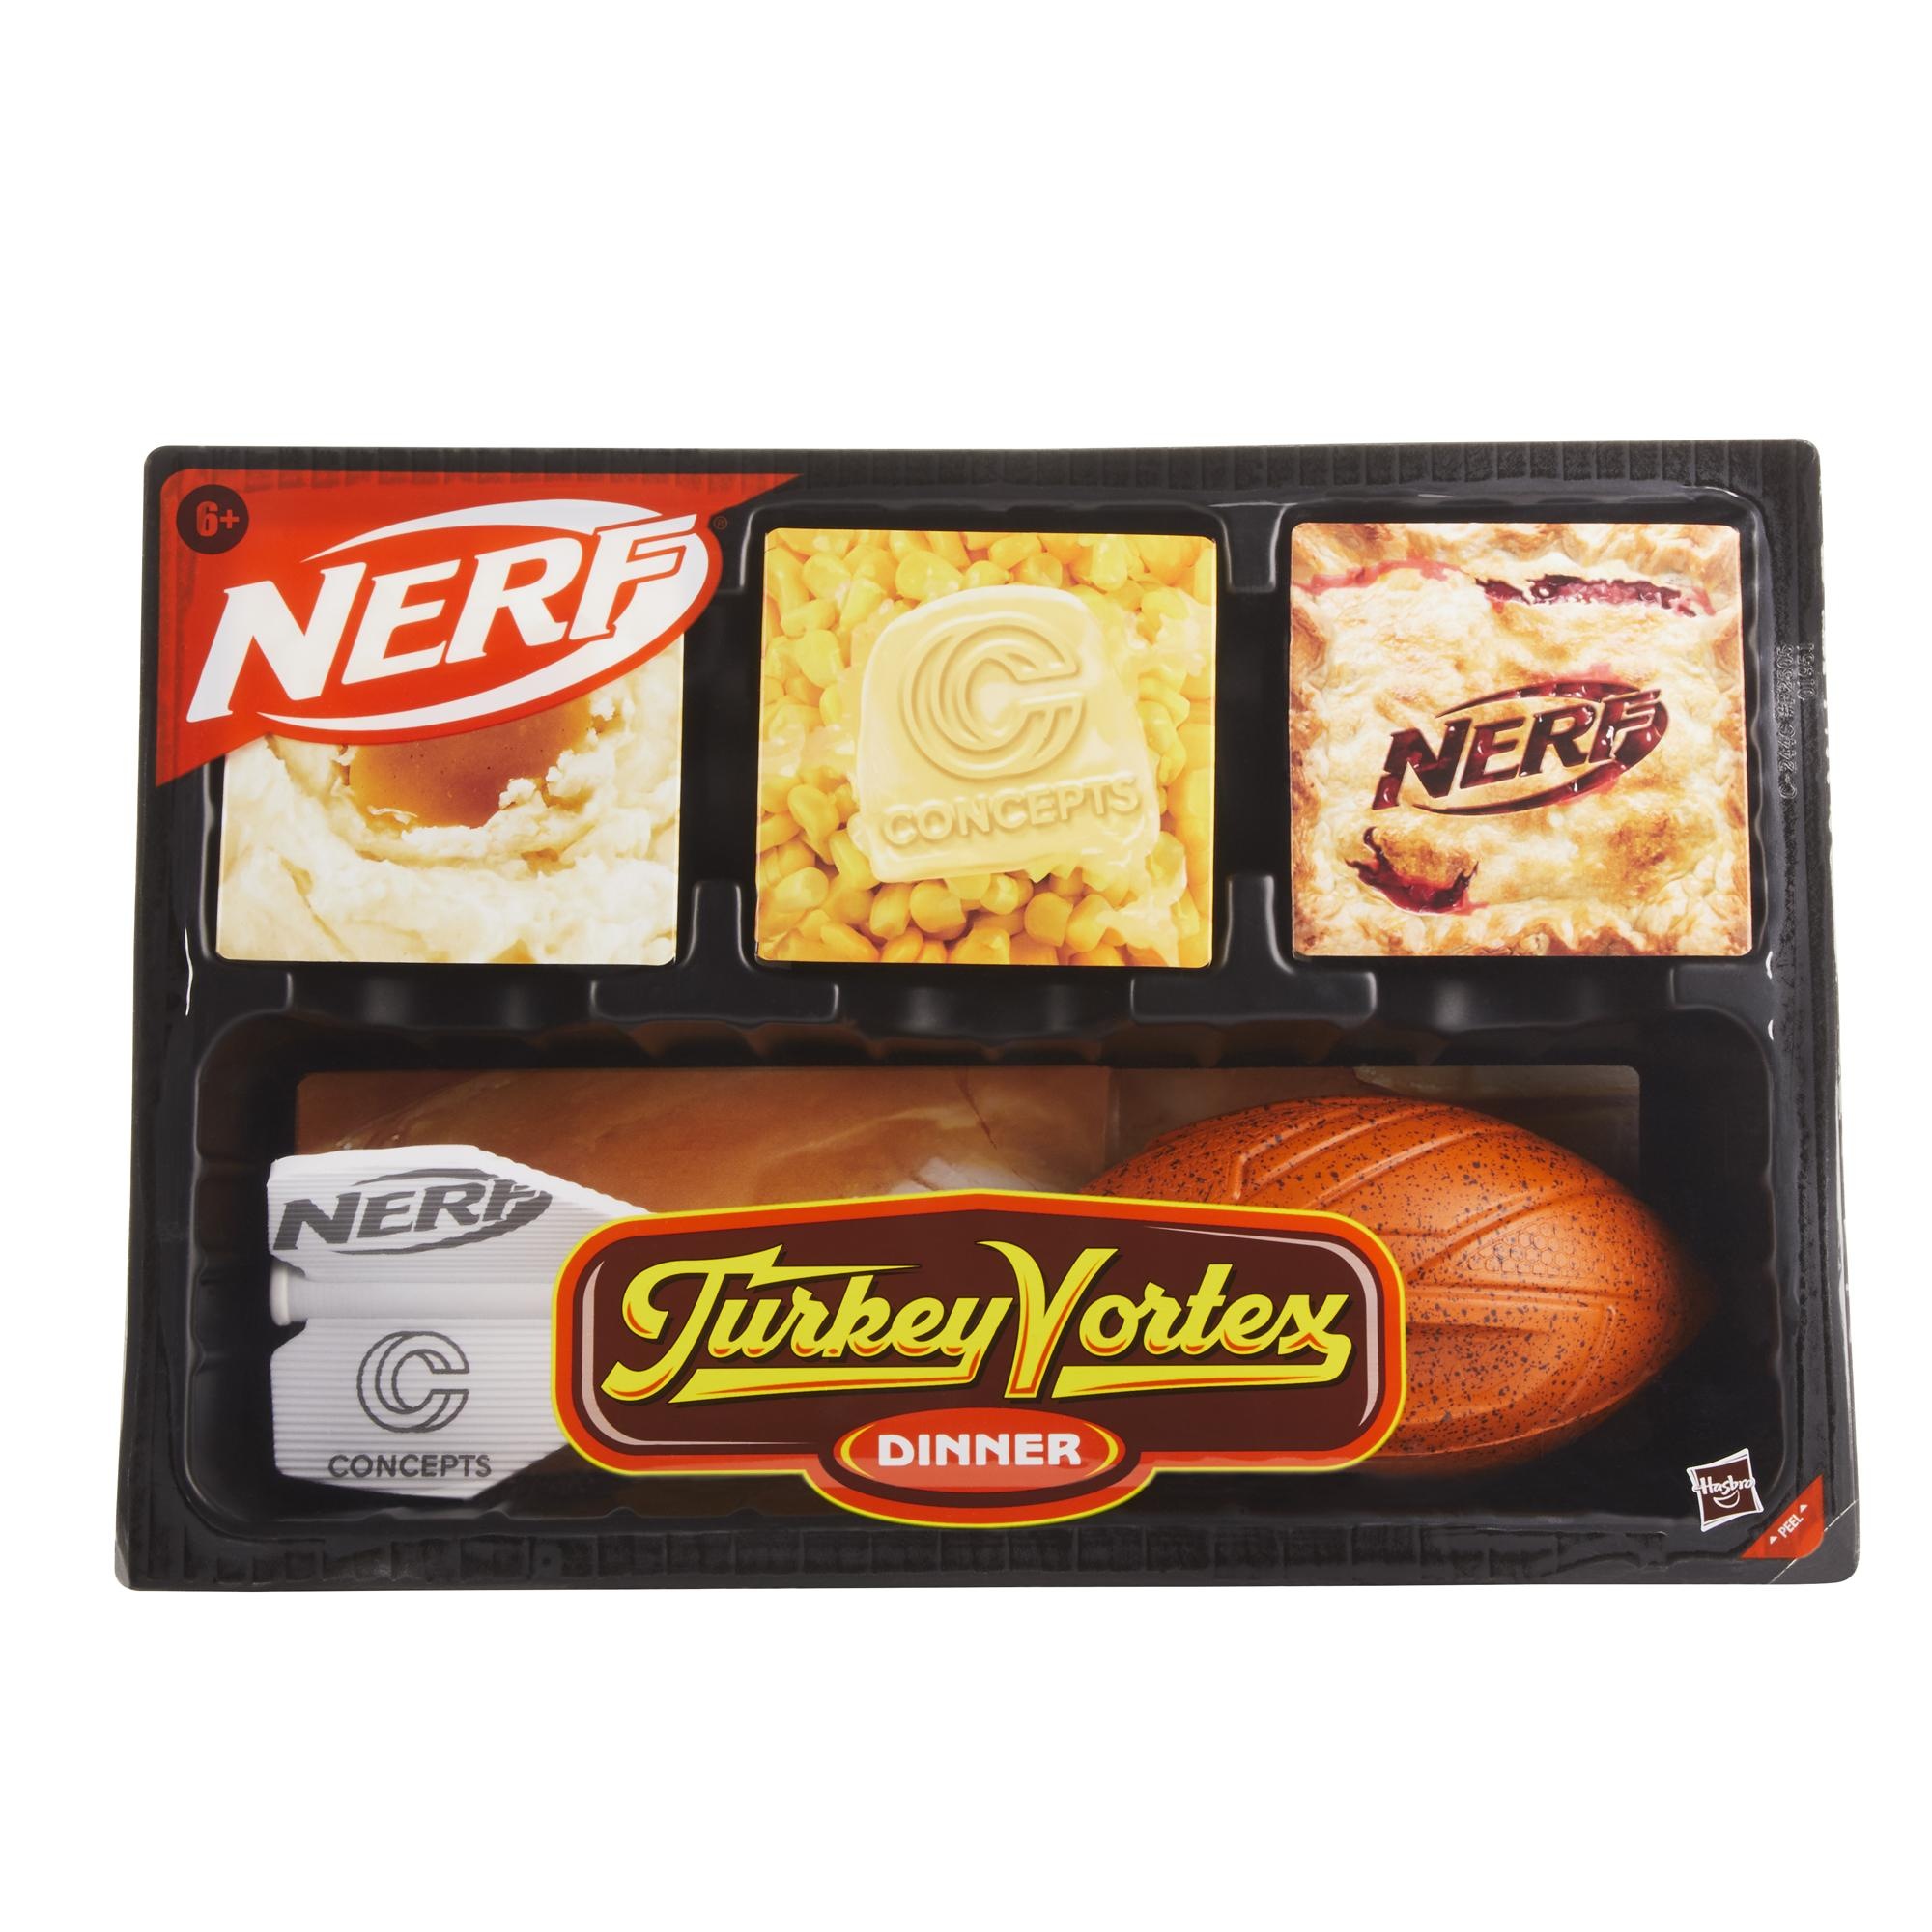 Nerf Sports Turkey Vortex Dinner -- Nerf Vortex Aero Howler Football, Turkey Drumstick Design, Fun Retro Dinner Tray